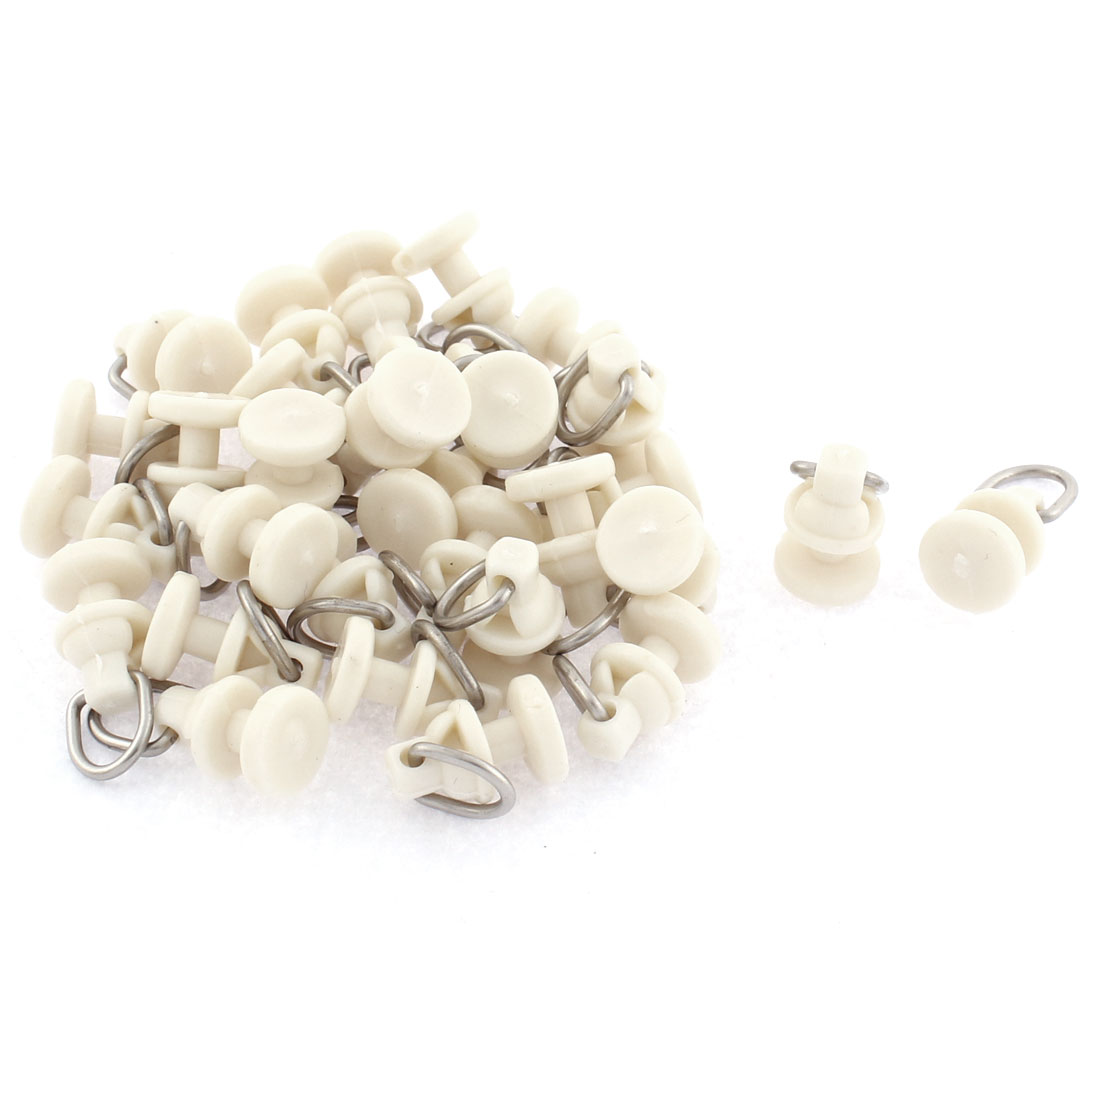 Plastic Curtain Mounting Track Carrier Roller 10mm Dia White 30 Pcs